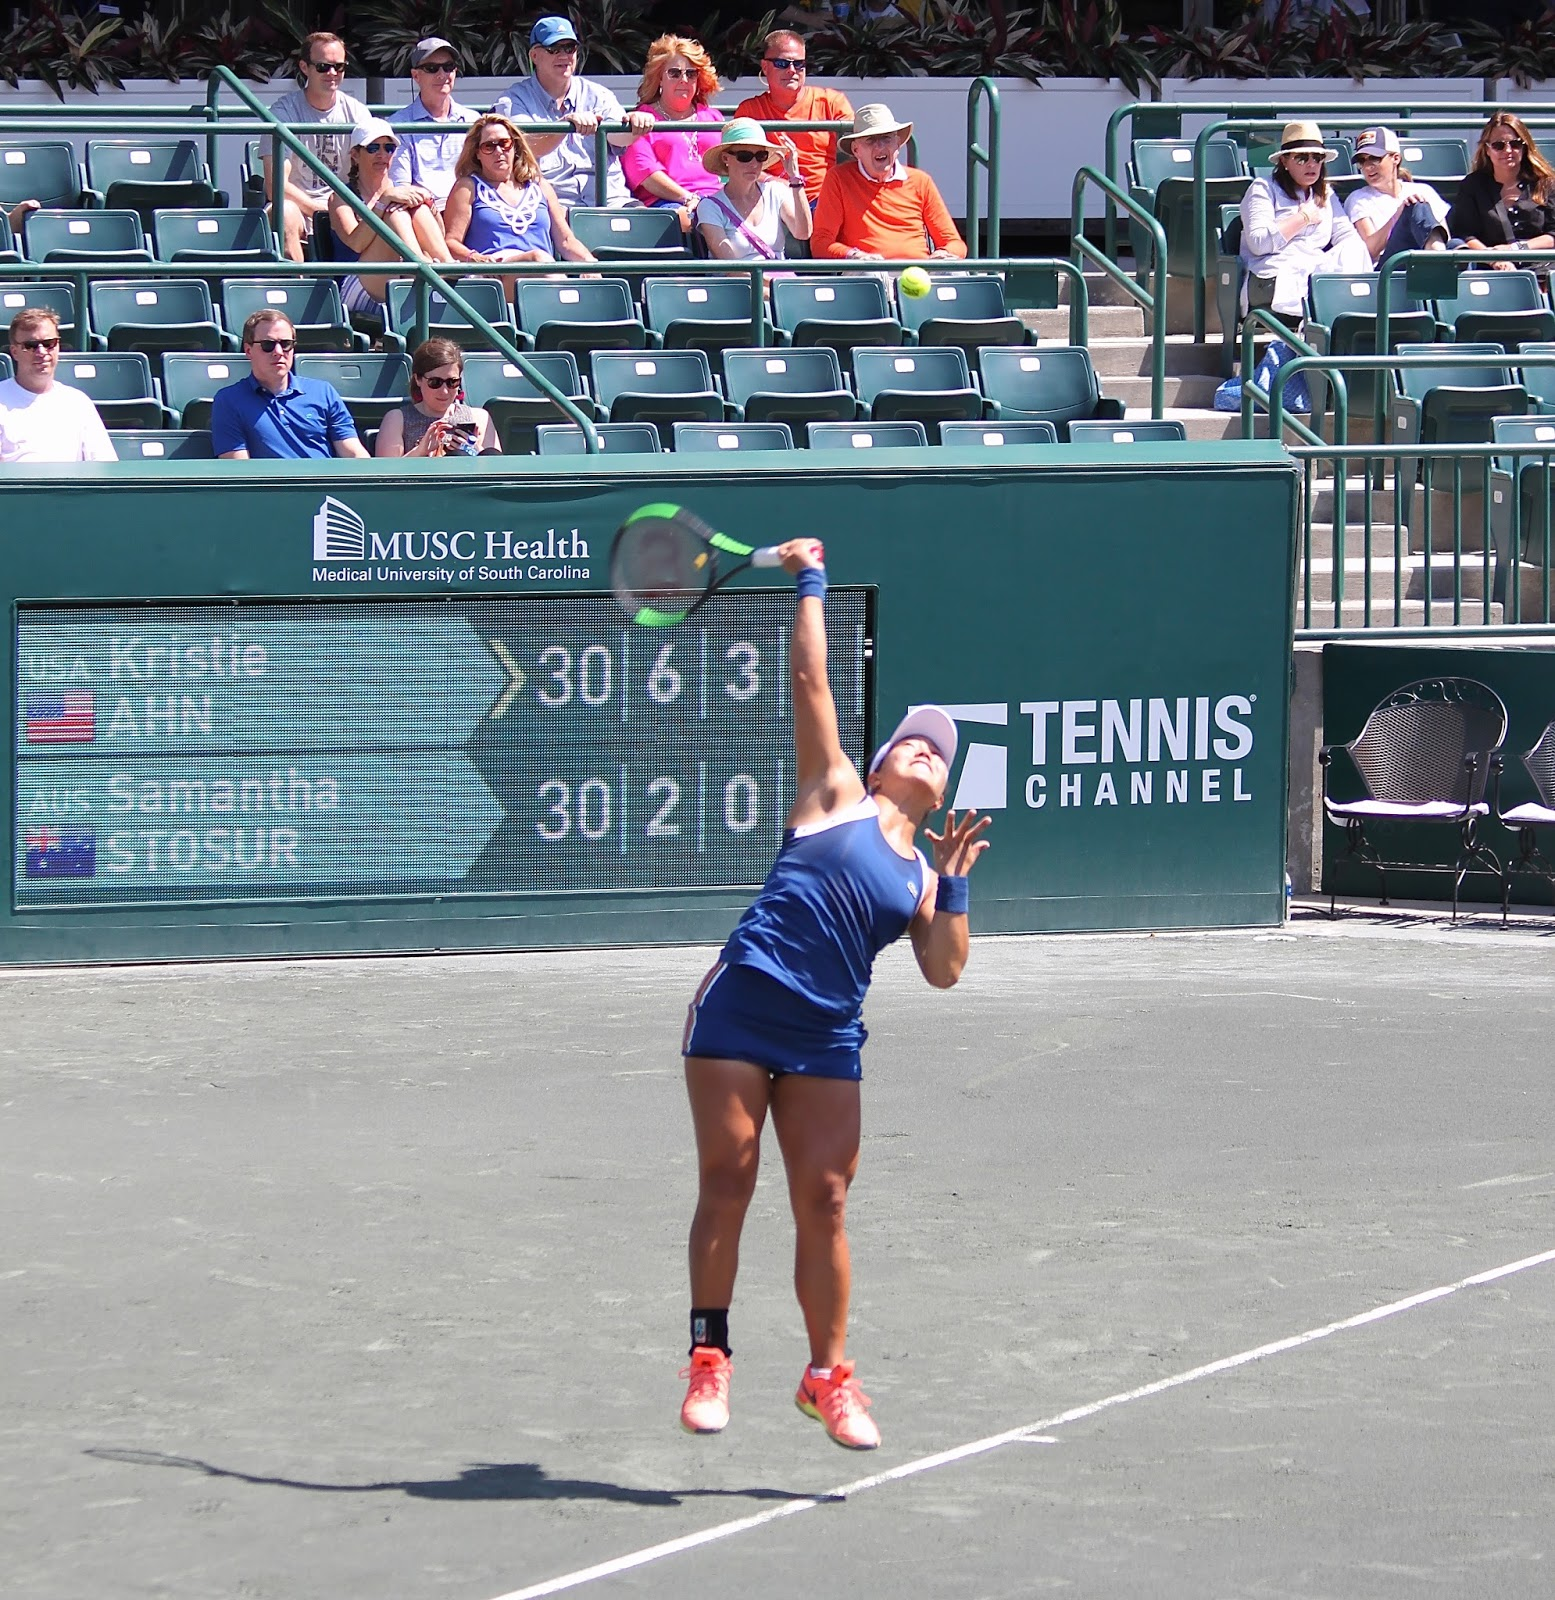 lowcountry outdoors: 2018 volvo car open - tuesday tennis